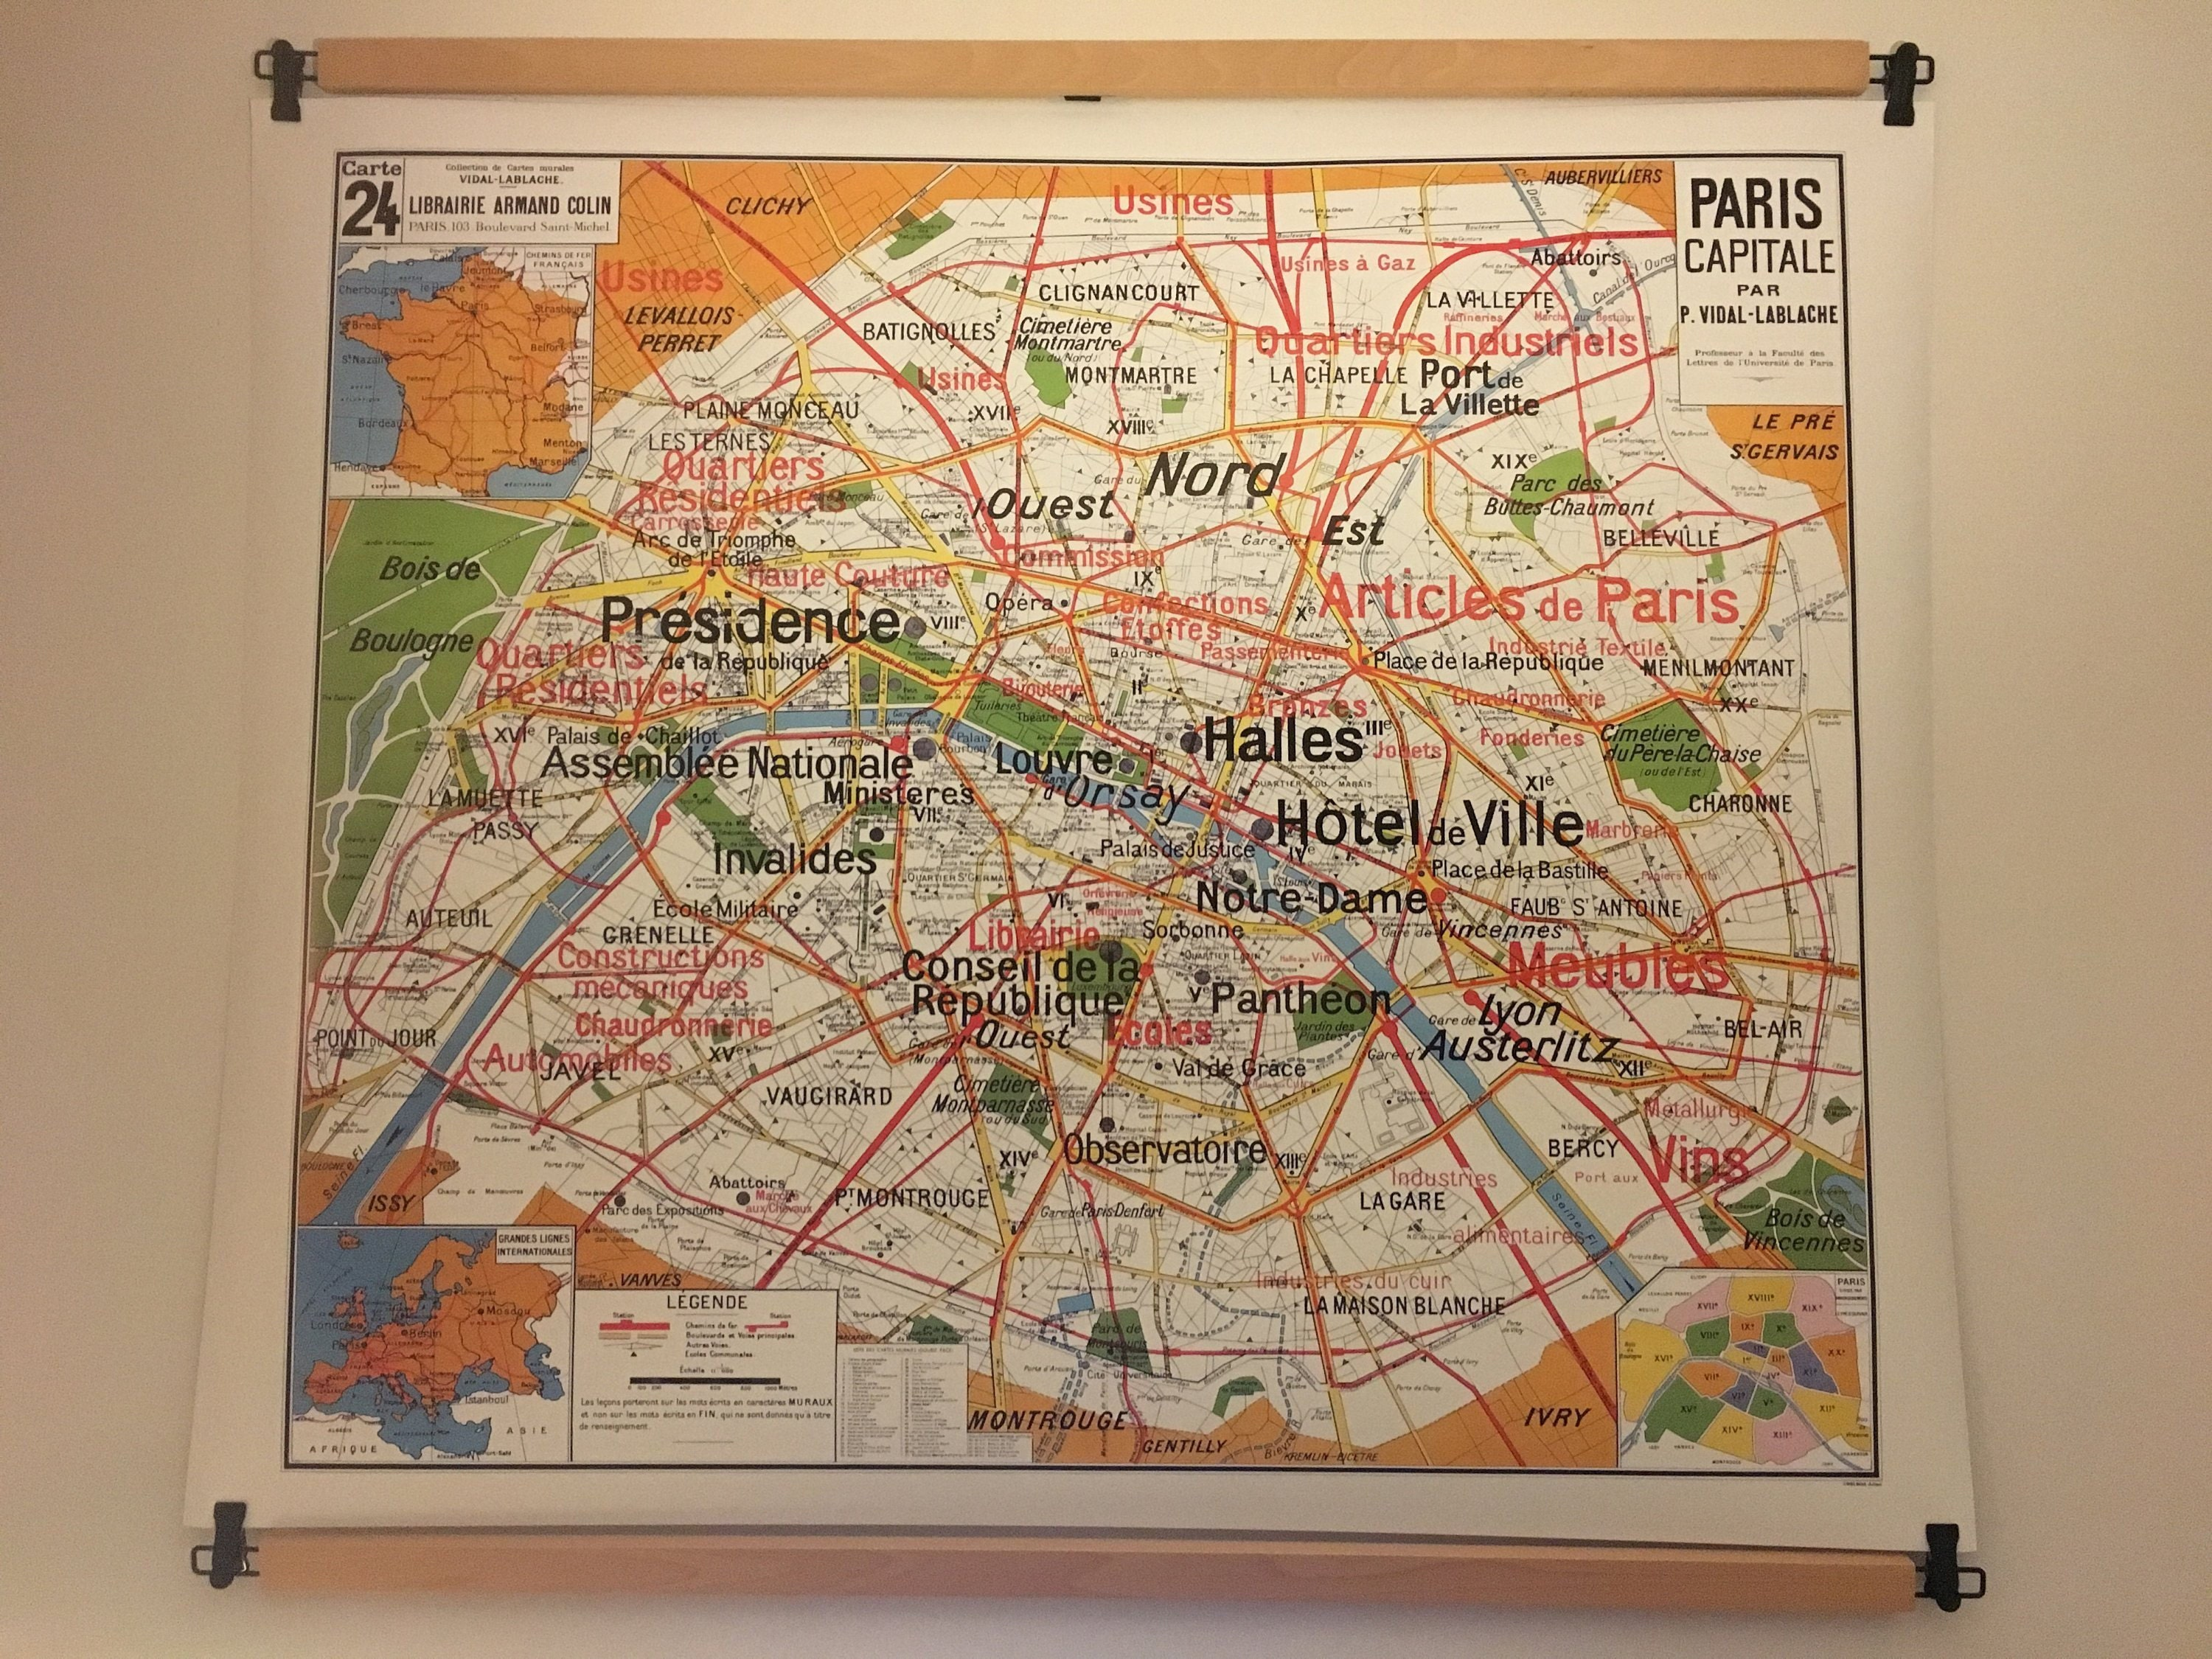 Reproduction of old school N 24 Paris capital by Vidal Lablache map